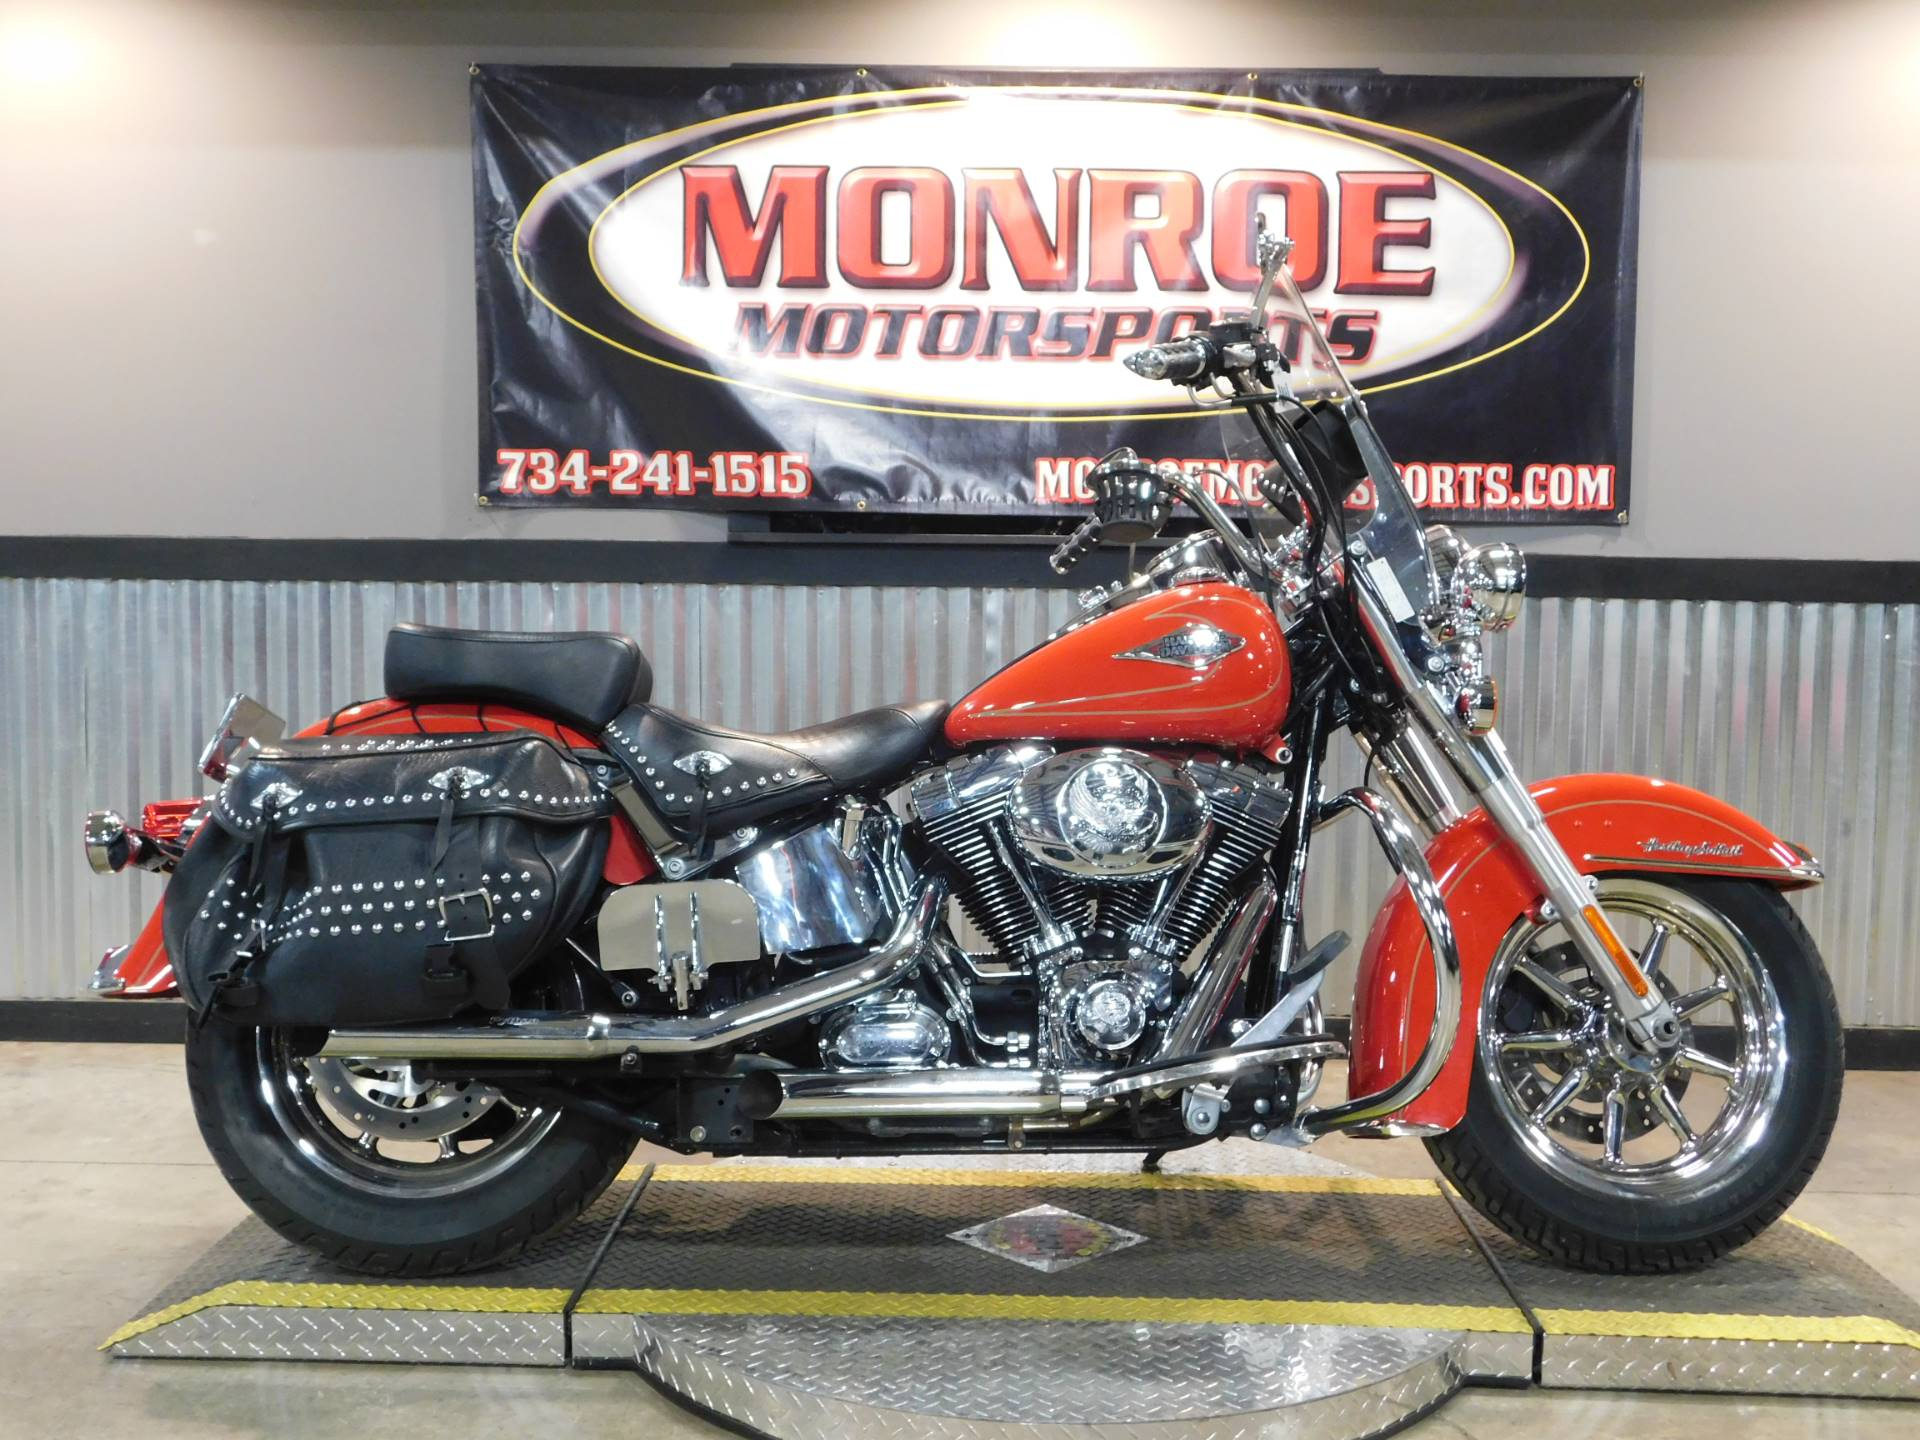 2010 Harley-Davidson Heritage Softail® Classic in Monroe, Michigan - Photo 1